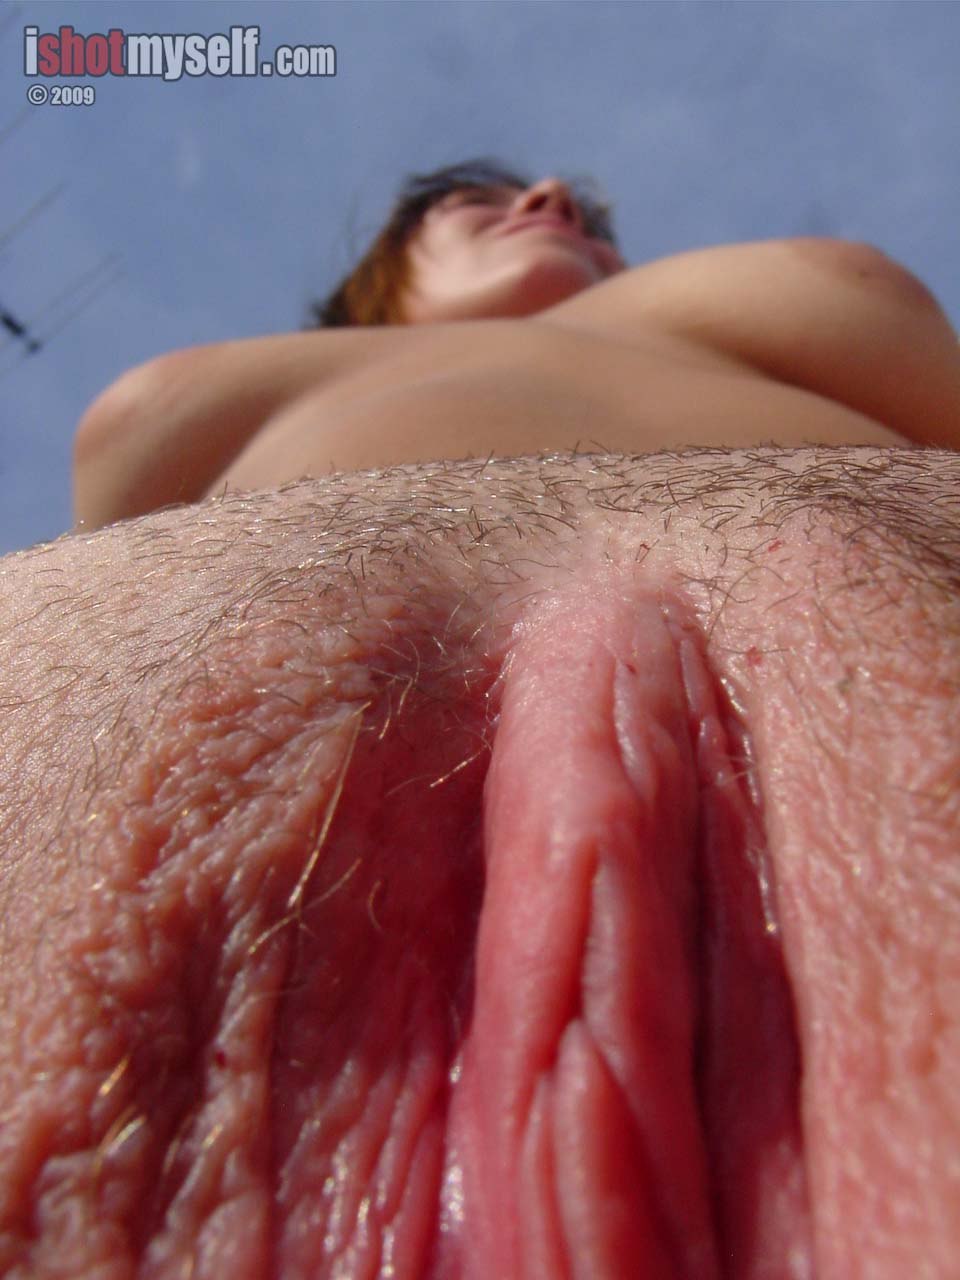 Giantess shrunk playboy insertion ass sex porn picture